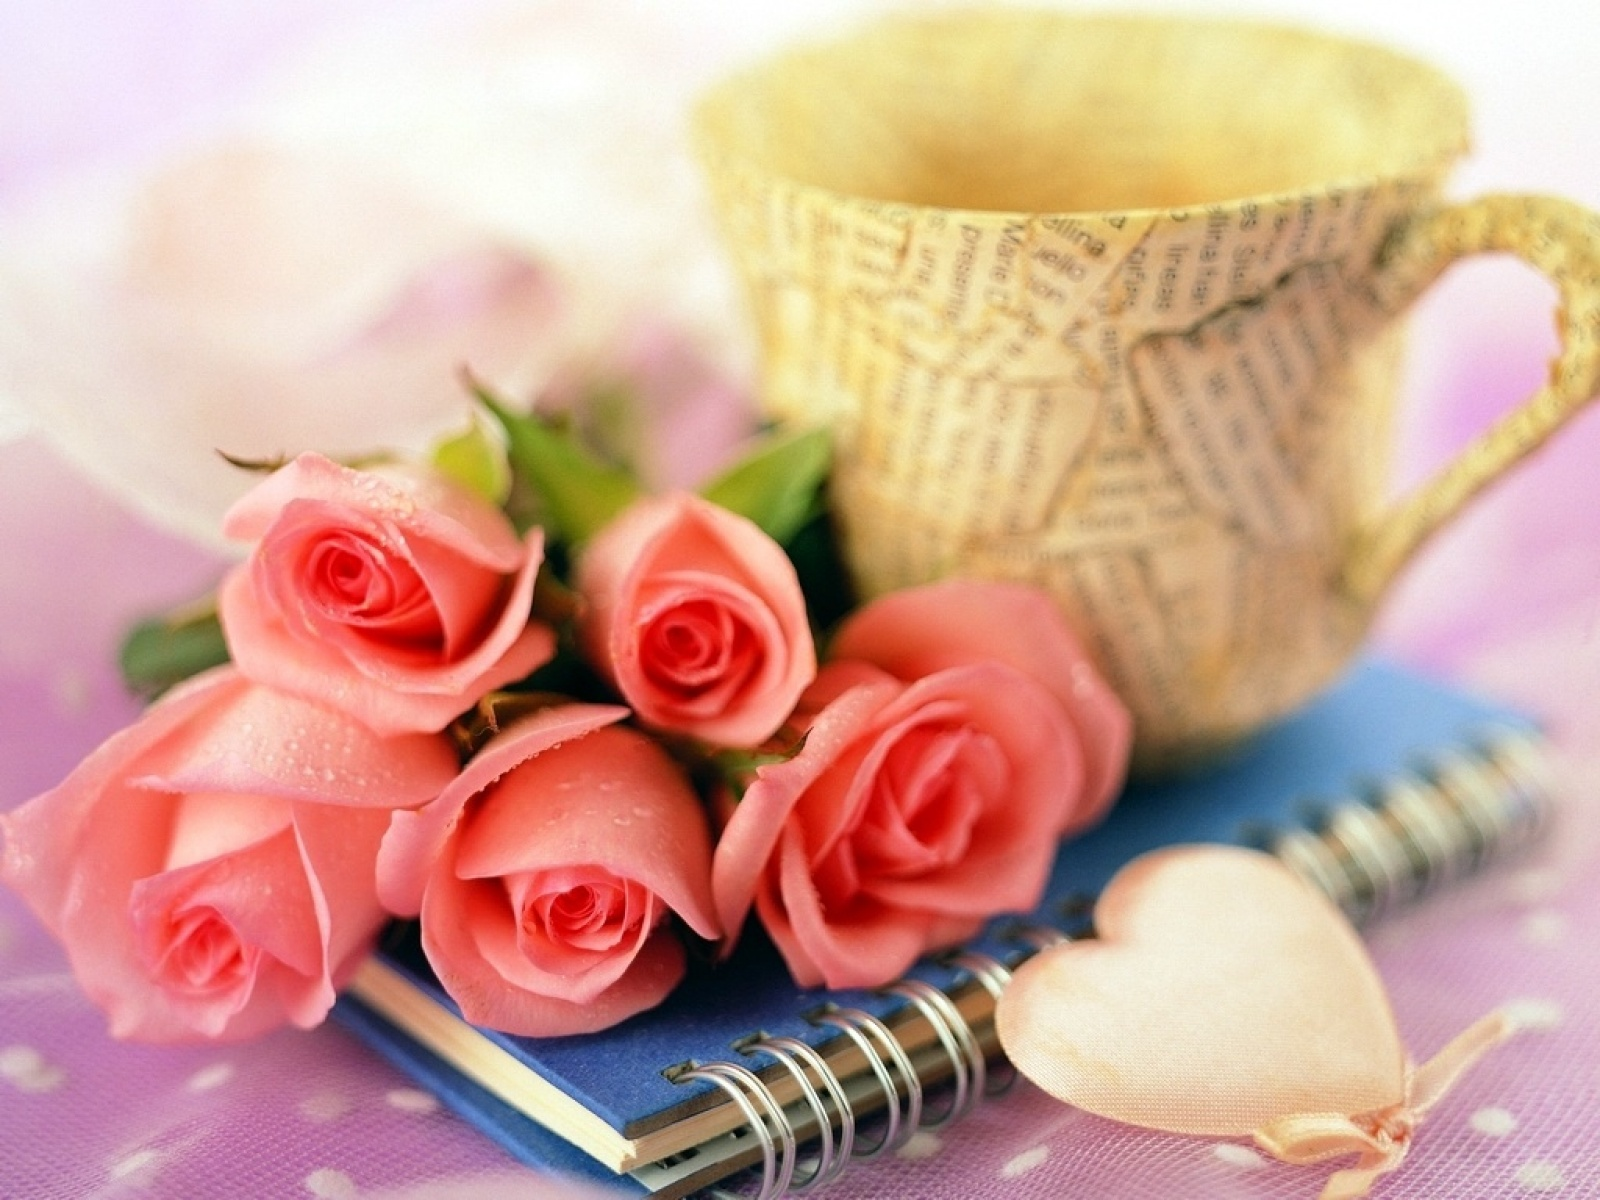 Beautiful rose images and wallpapers 7